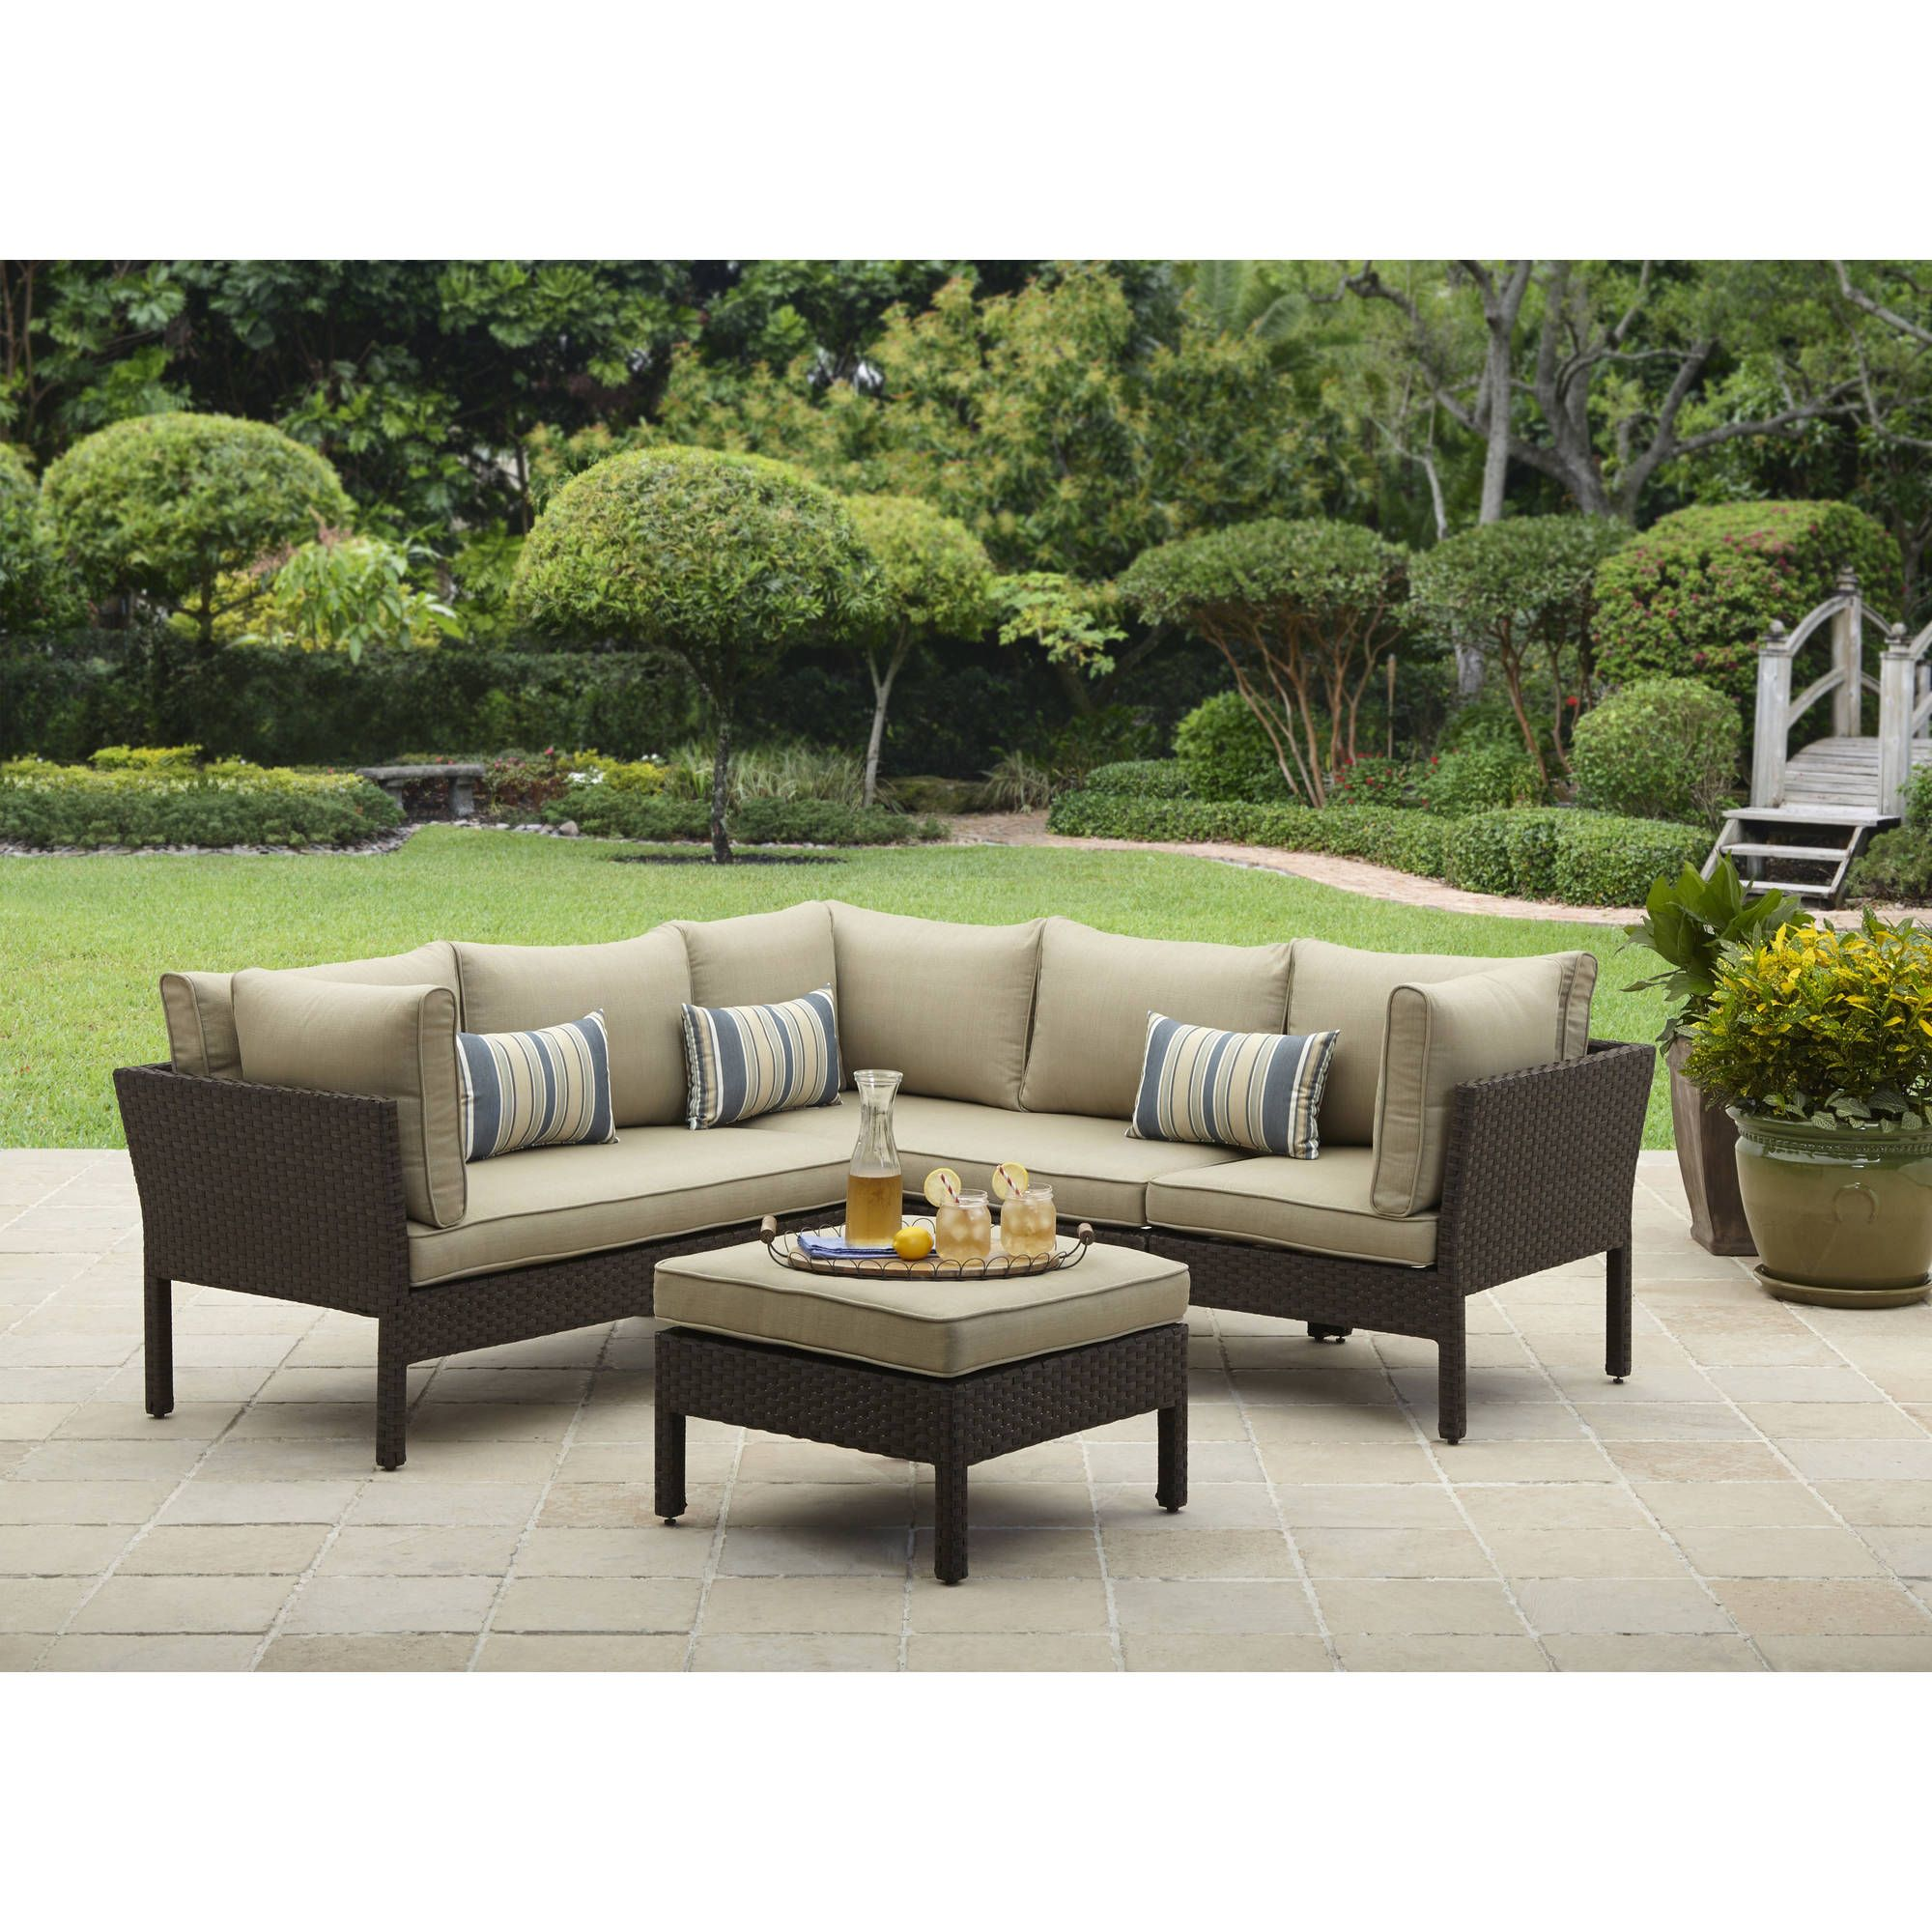 Better Homes And Gardens Avila Beach Patio Furniture Collection